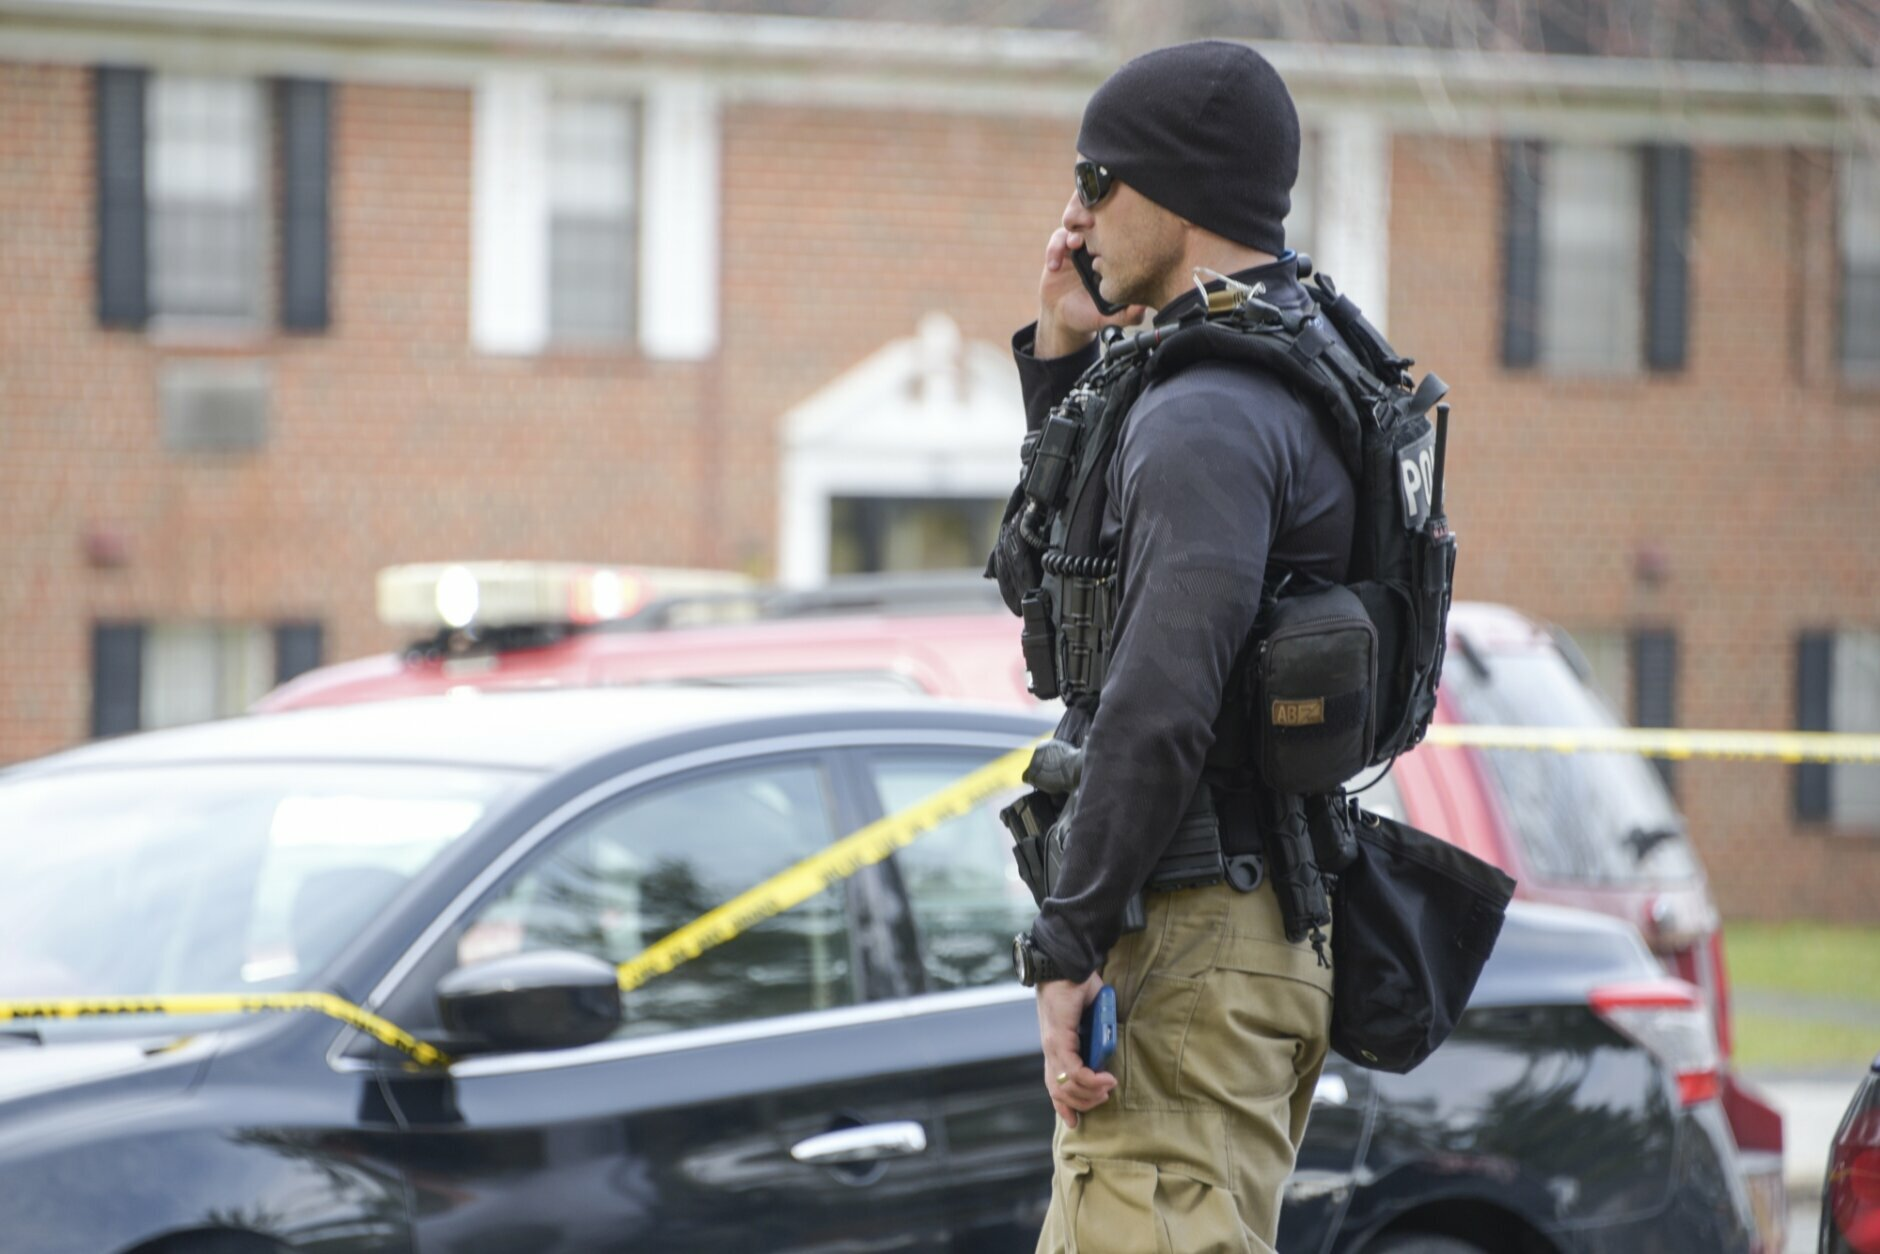 Law enforcement personnel work at the scene of a shooting, Wednesday, Feb. 12, 2020, in Baltimore. Two law enforcement officers with a fugitive task force were injured and a suspect died in the shooting, the U.S. Marshals Service said. (Ulysses Muñoz/The Baltimore Sun via AP)